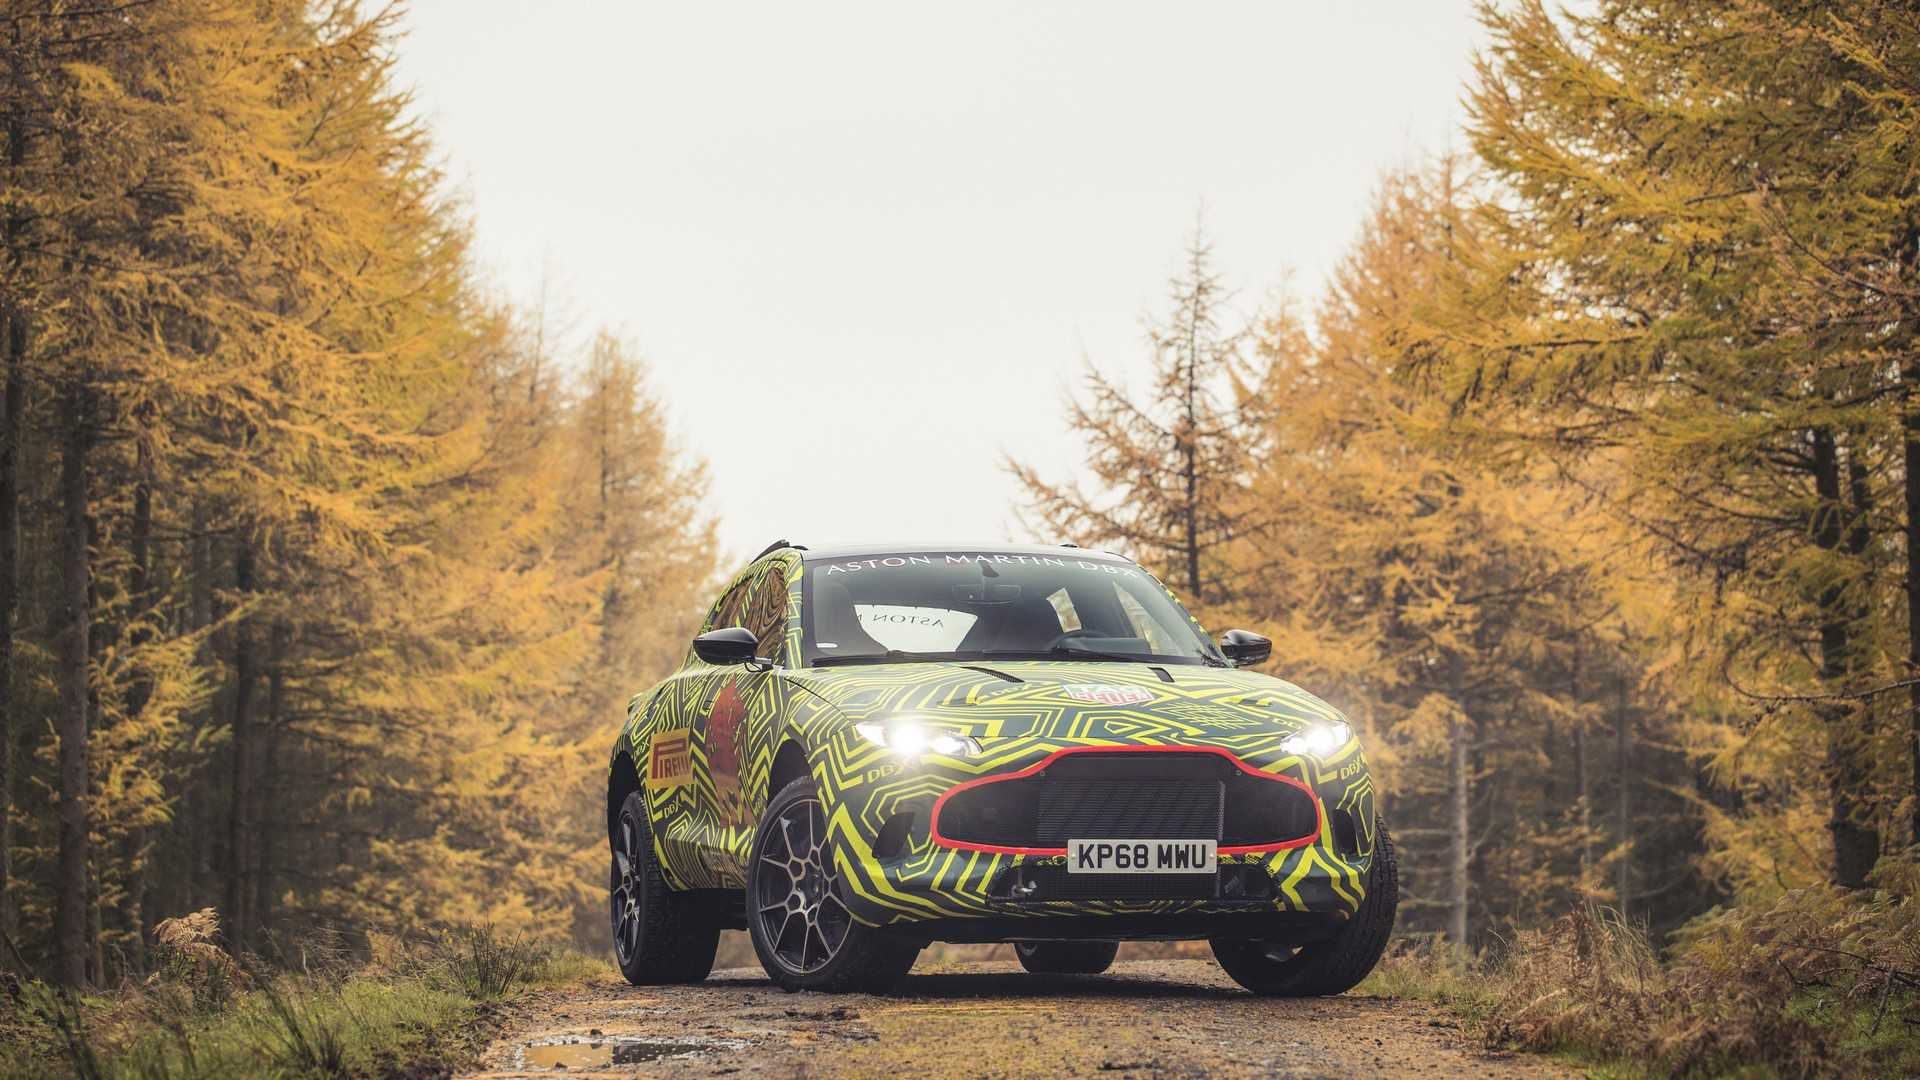 Aston Martin's first SUV, the DBX, sees the light of day